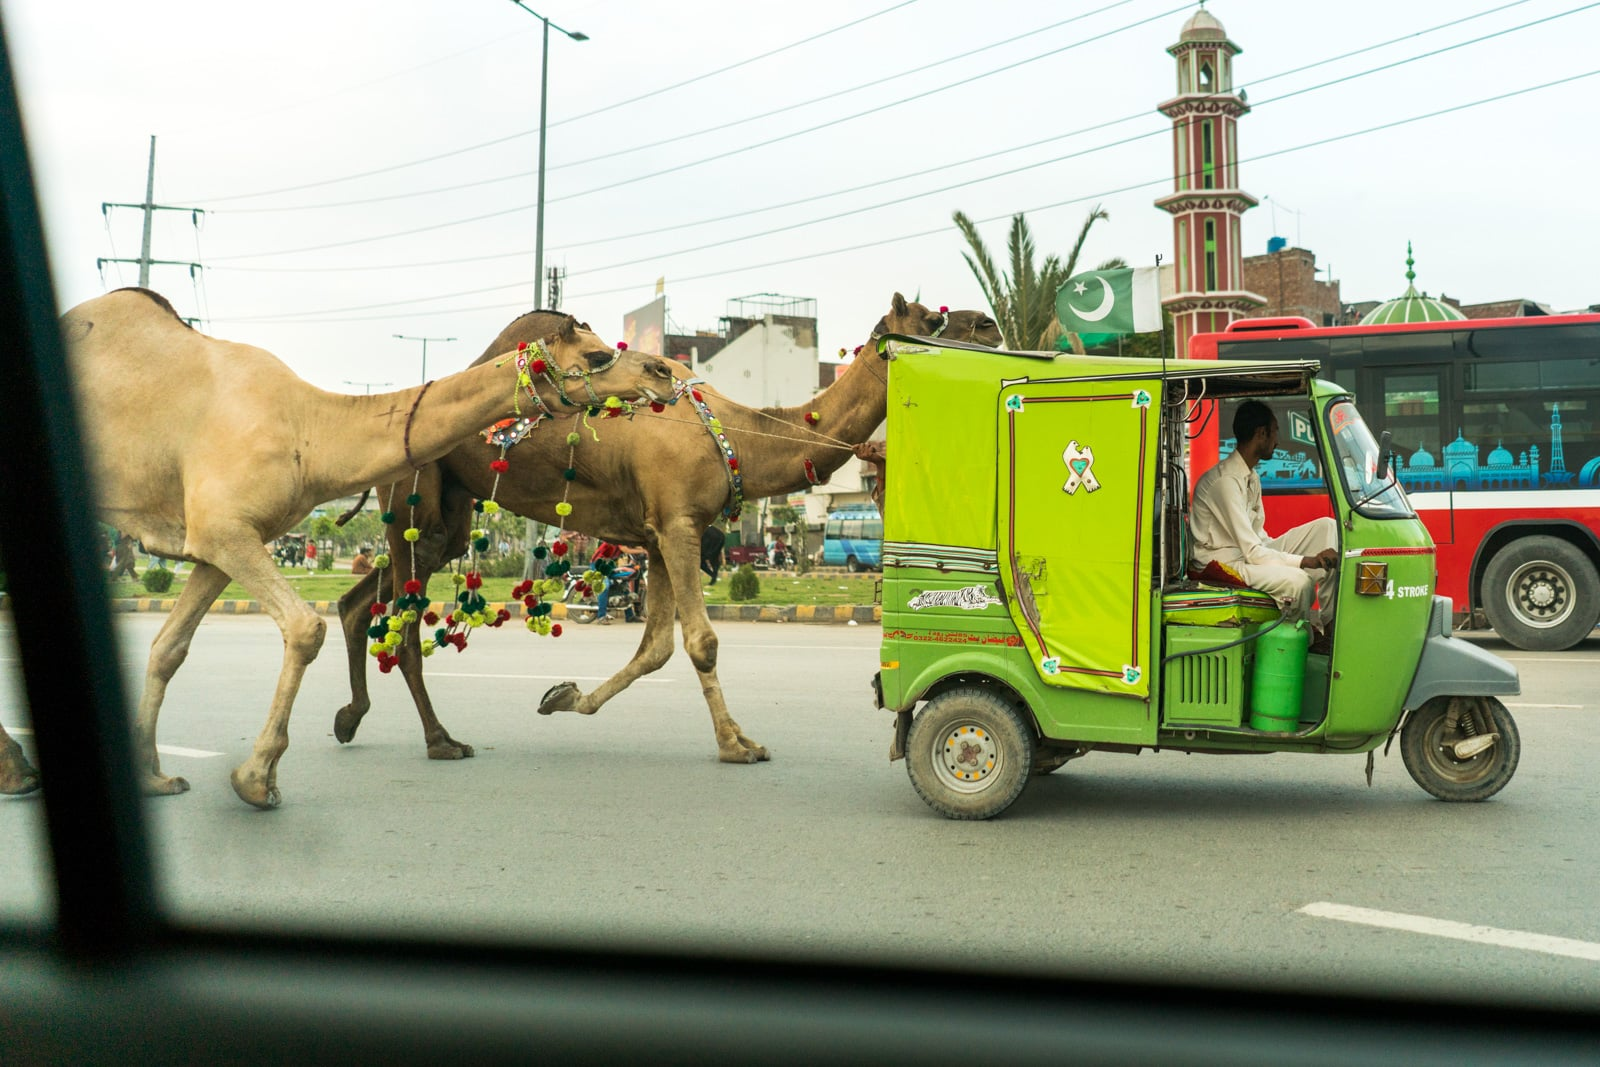 Celebrating Eid al-Adha in Lahore, Pakistan - Rickshaw pulling camels down the streets of Lahore - Lost With Purpose travel blog